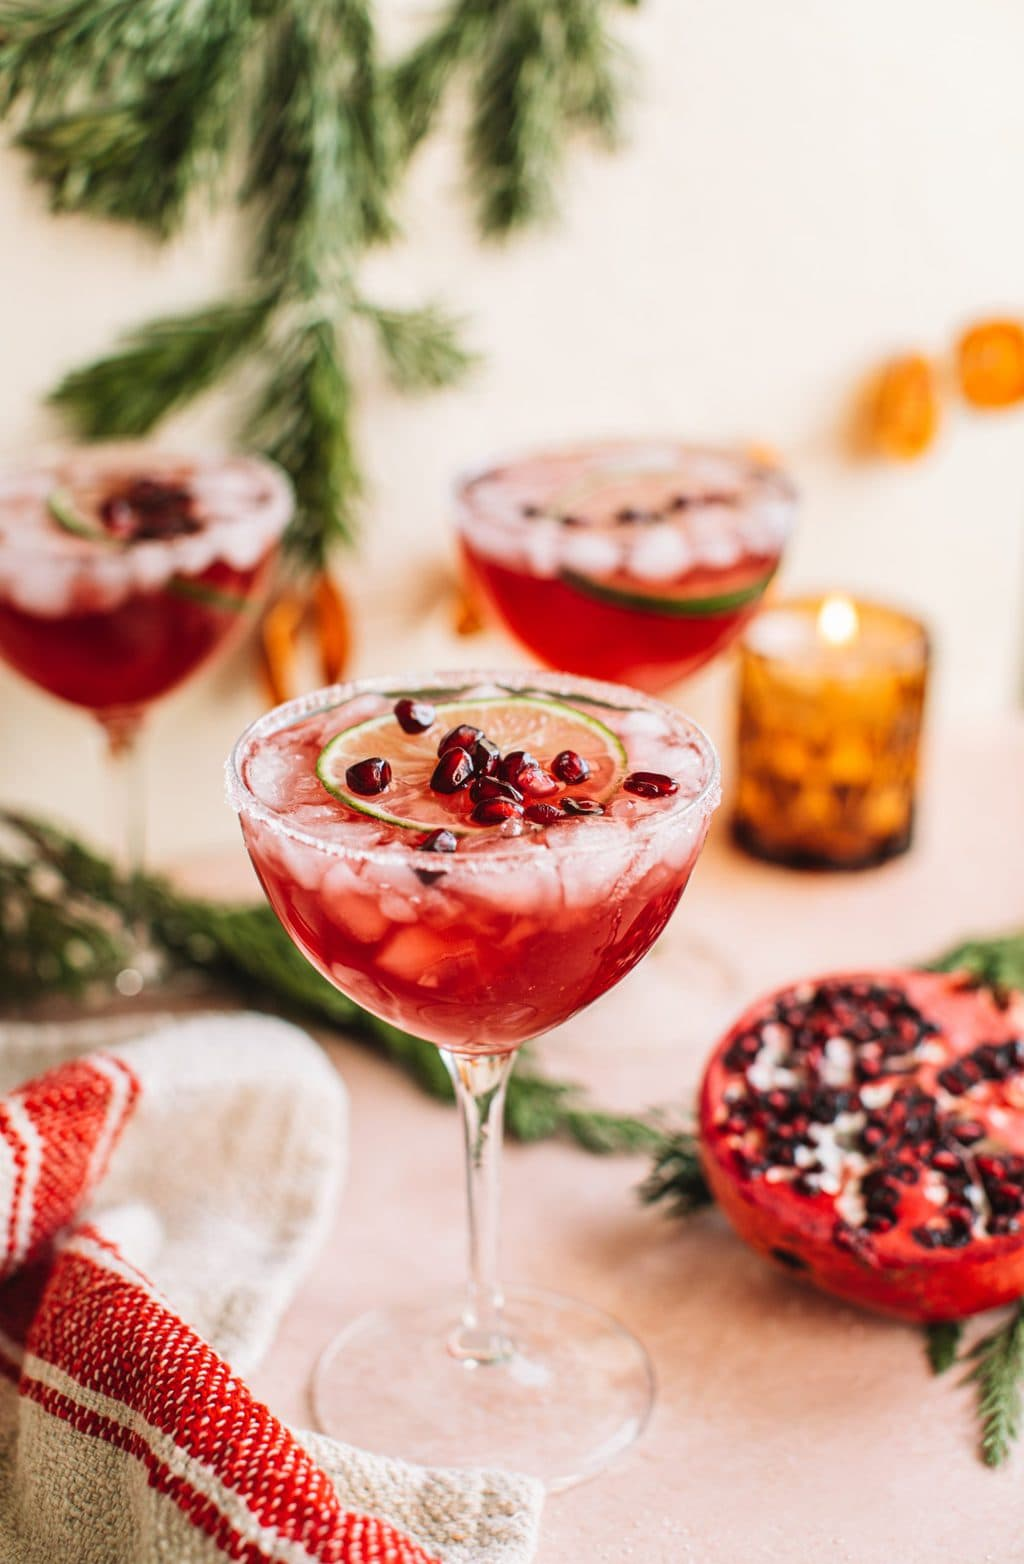 Cocktail glass filled with pomegranate christmas margarita on holiday tablescape